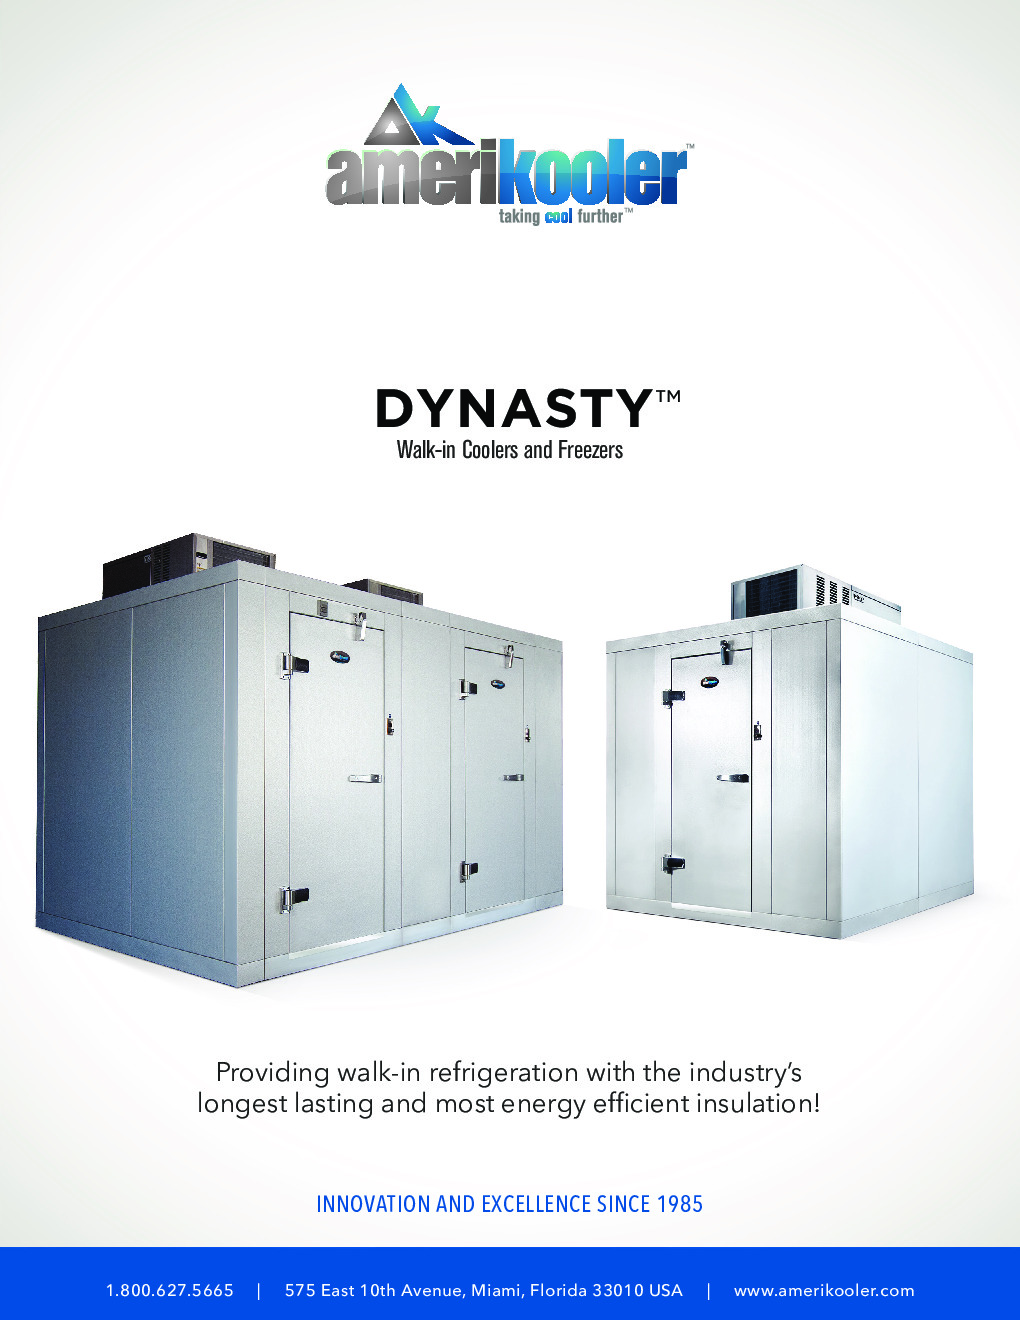 AmeriKooler DW081577N-7/8-RM 8' X 15' Walk-In Cooler, 8' L Cooler without Floor and 7' L Freezer, Remote